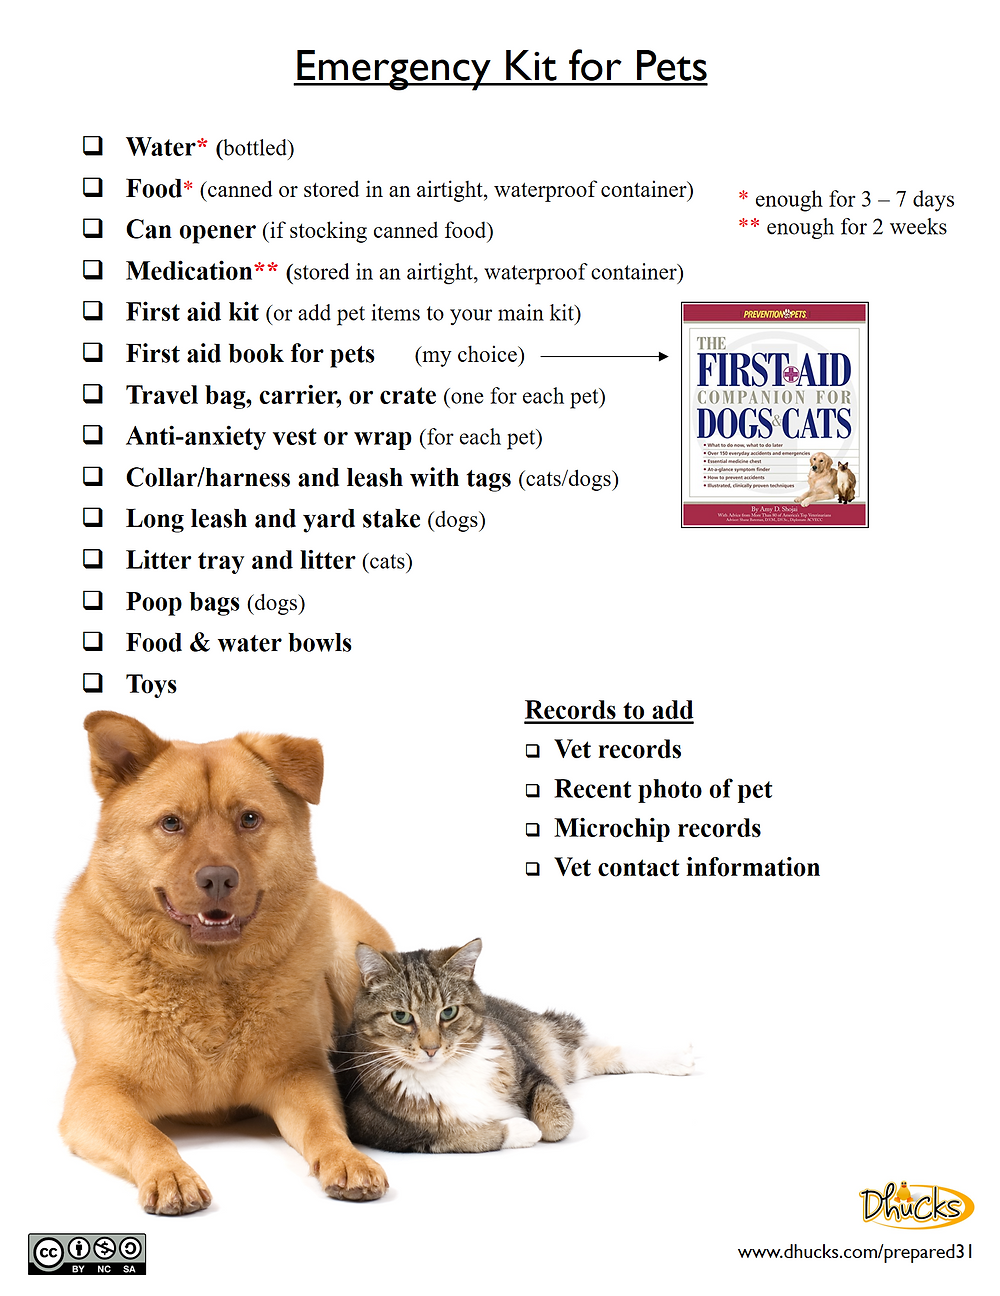 Dhucks'  Pet Emergency Kit List